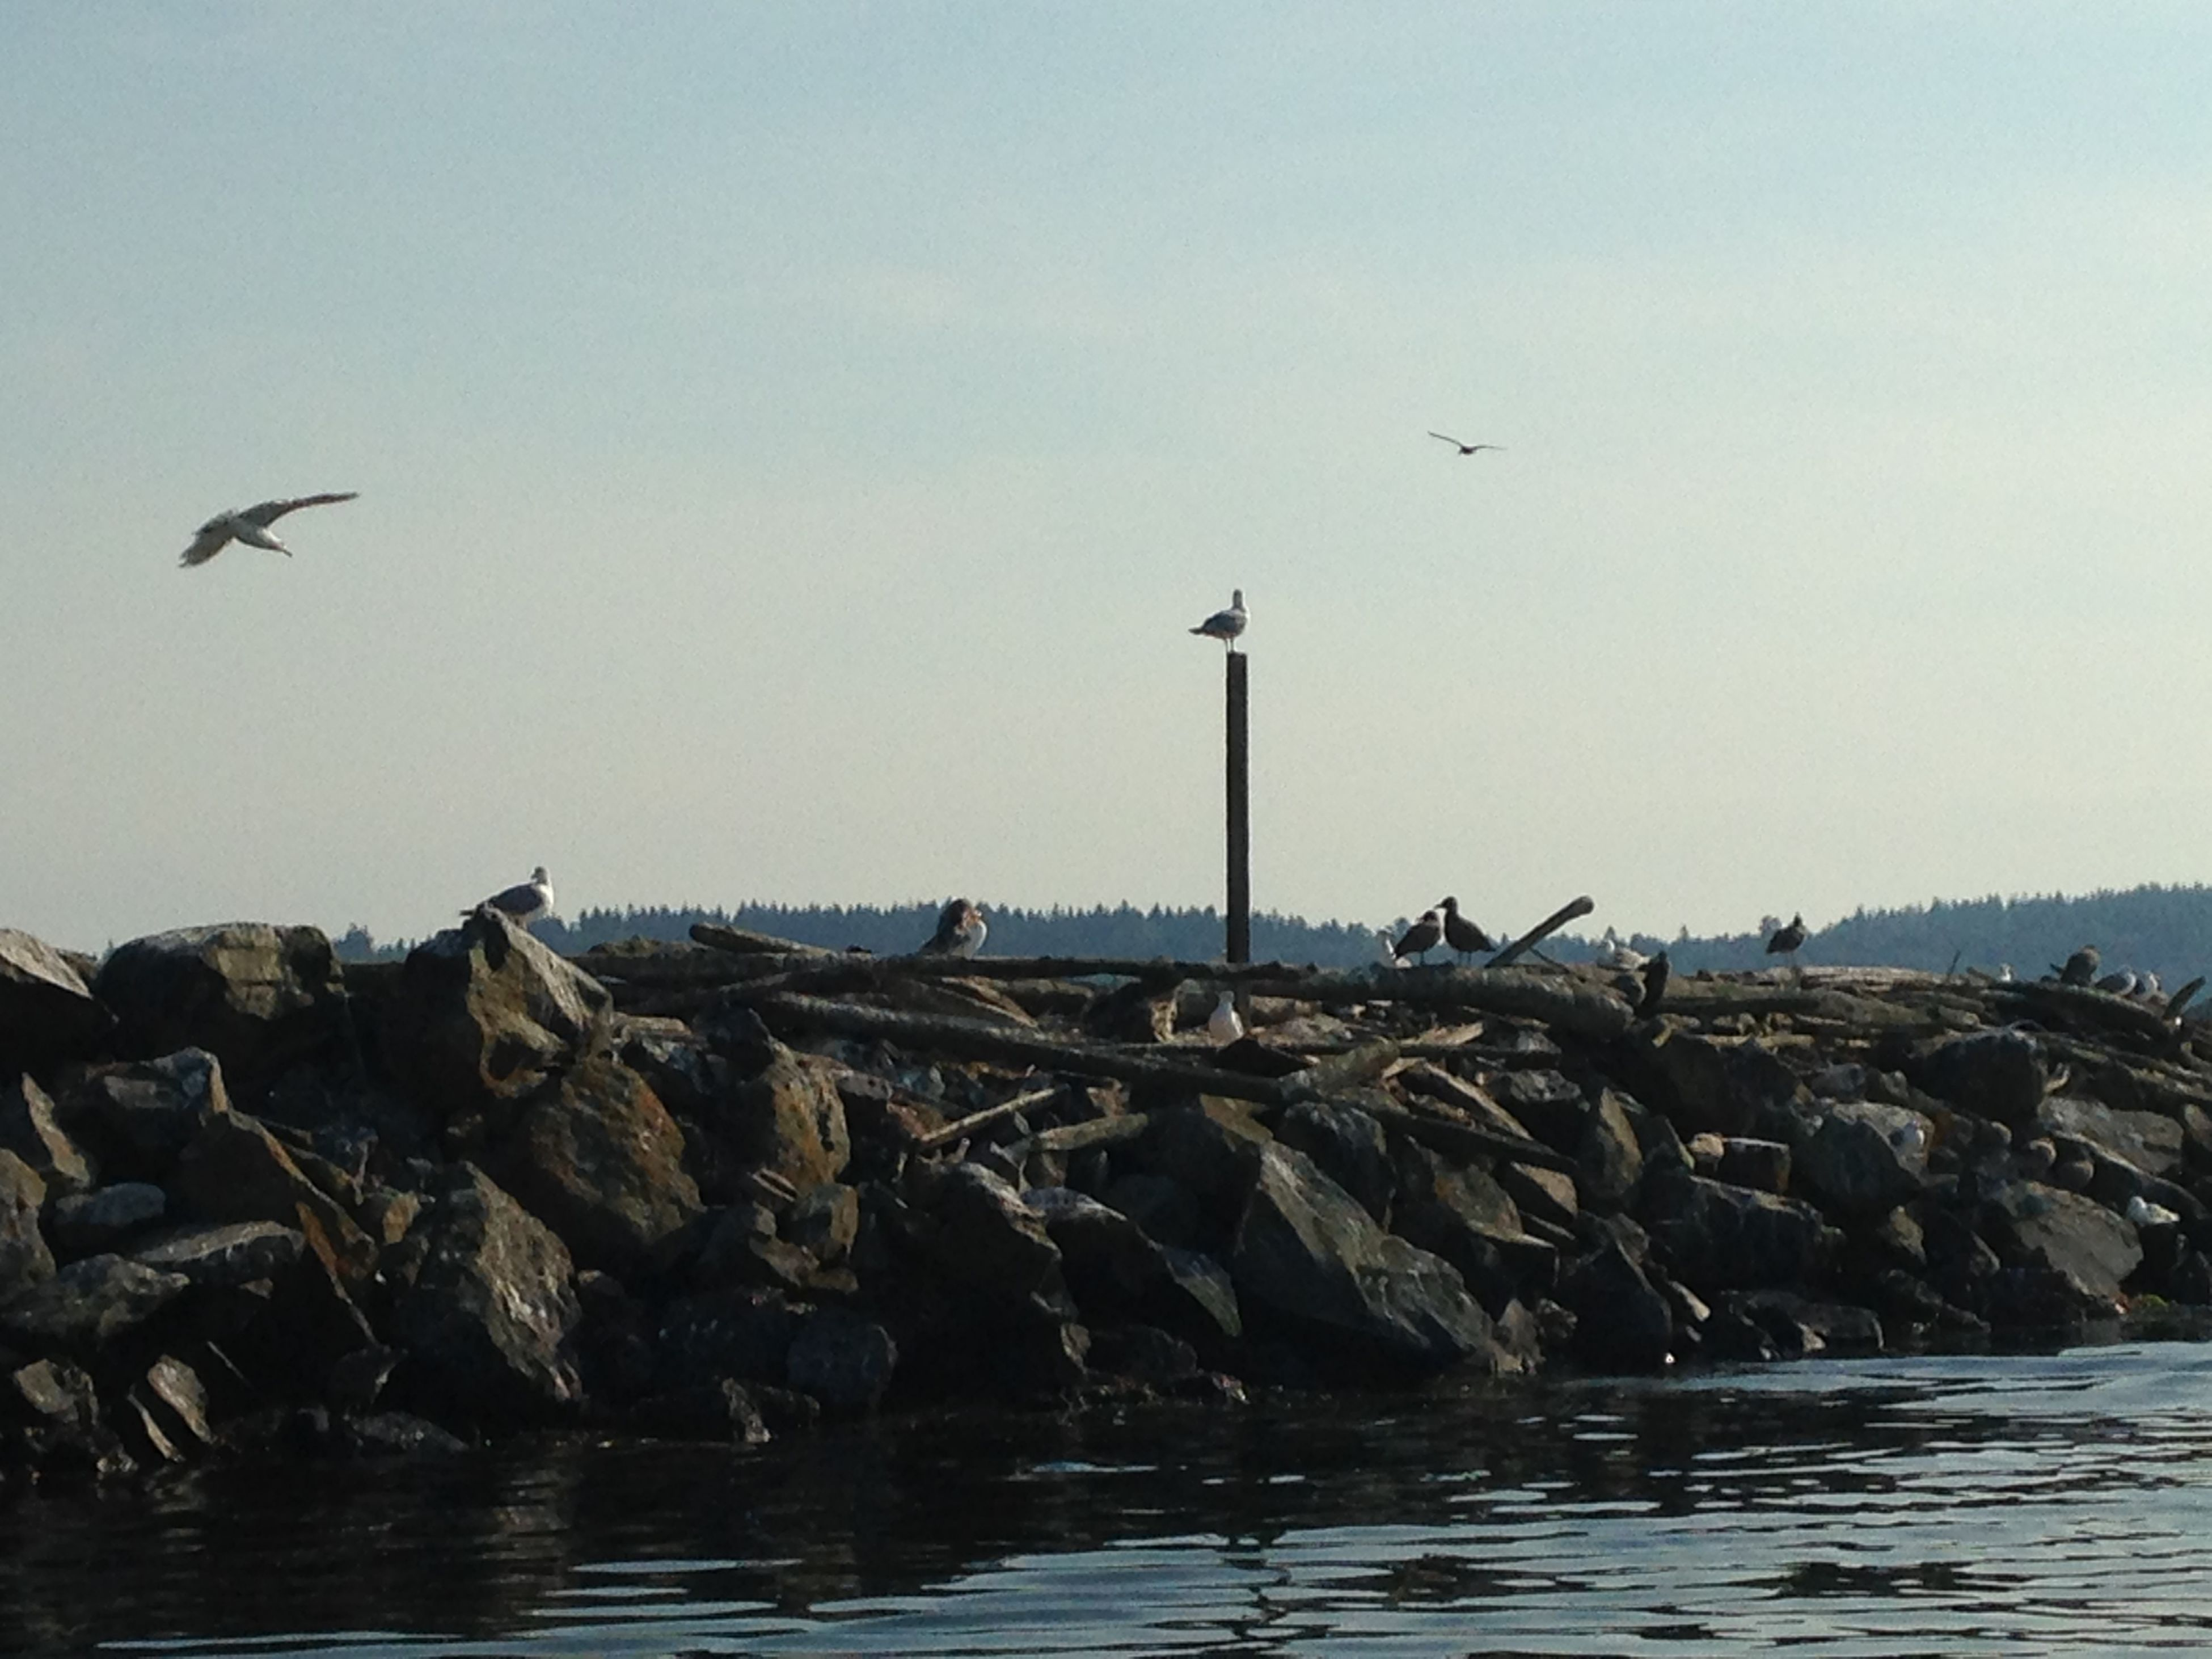 water, bird, sea, animal themes, rock - object, animals in the wild, wildlife, tranquility, tranquil scene, nature, waterfront, scenics, flying, sky, clear sky, beauty in nature, seagull, rock, copy space